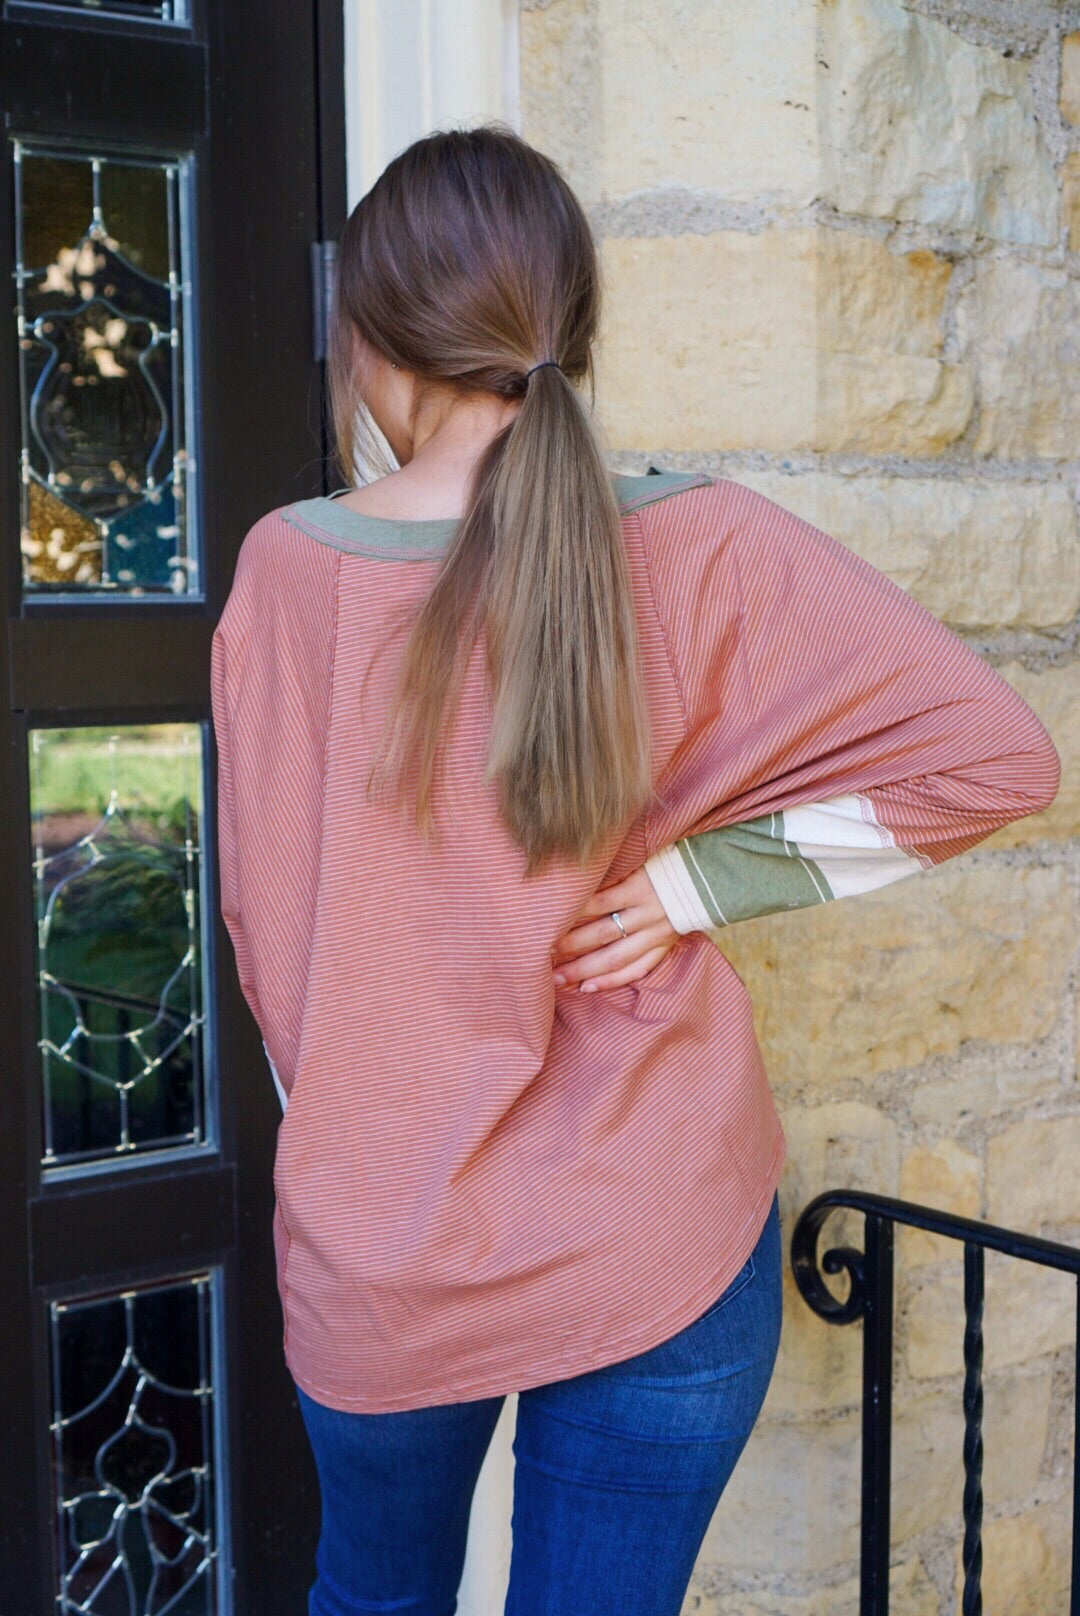 Abela Cinnamon Striped Top